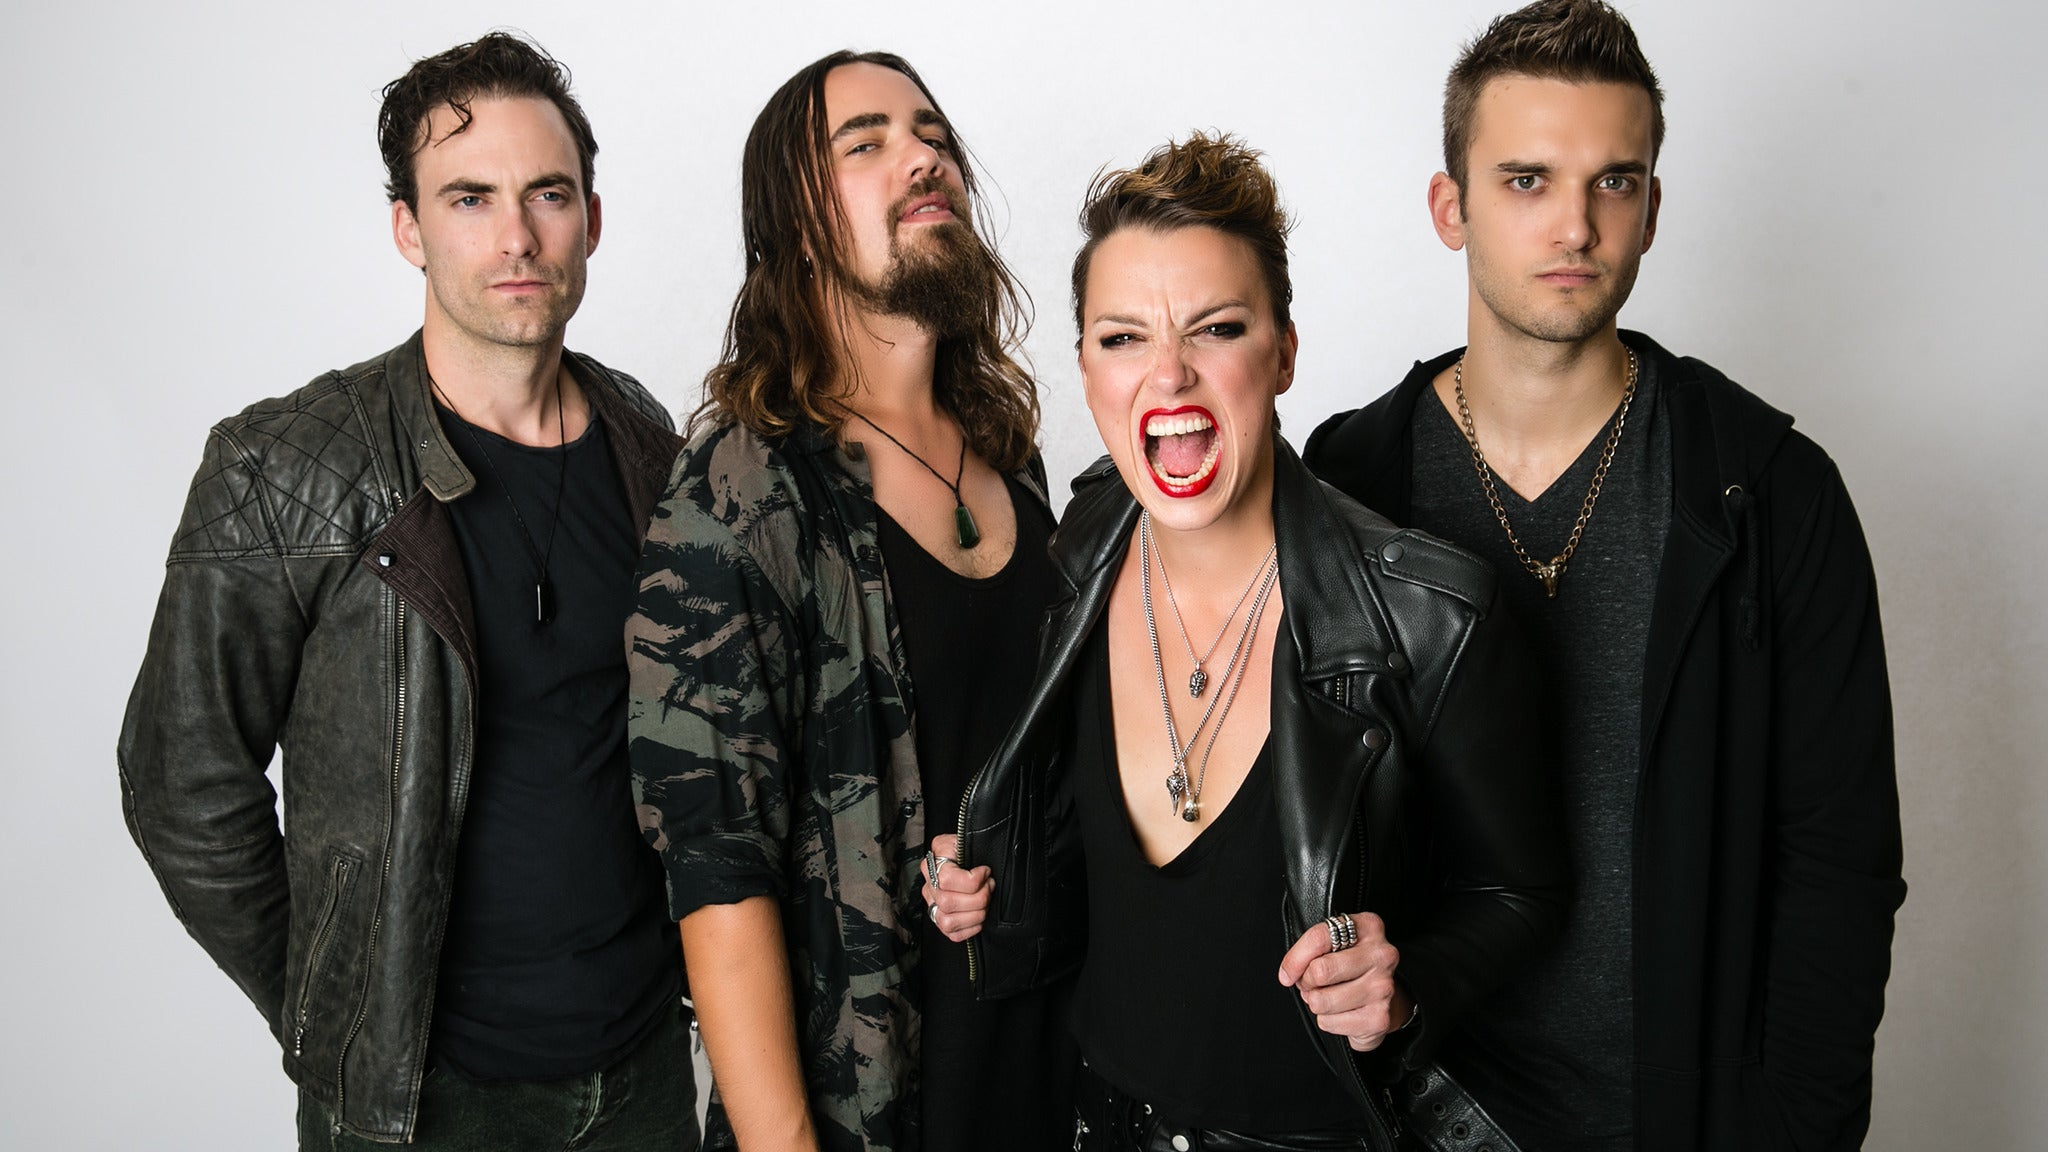 Halestorm + In This Moment at Big Sandy Superstore Arena